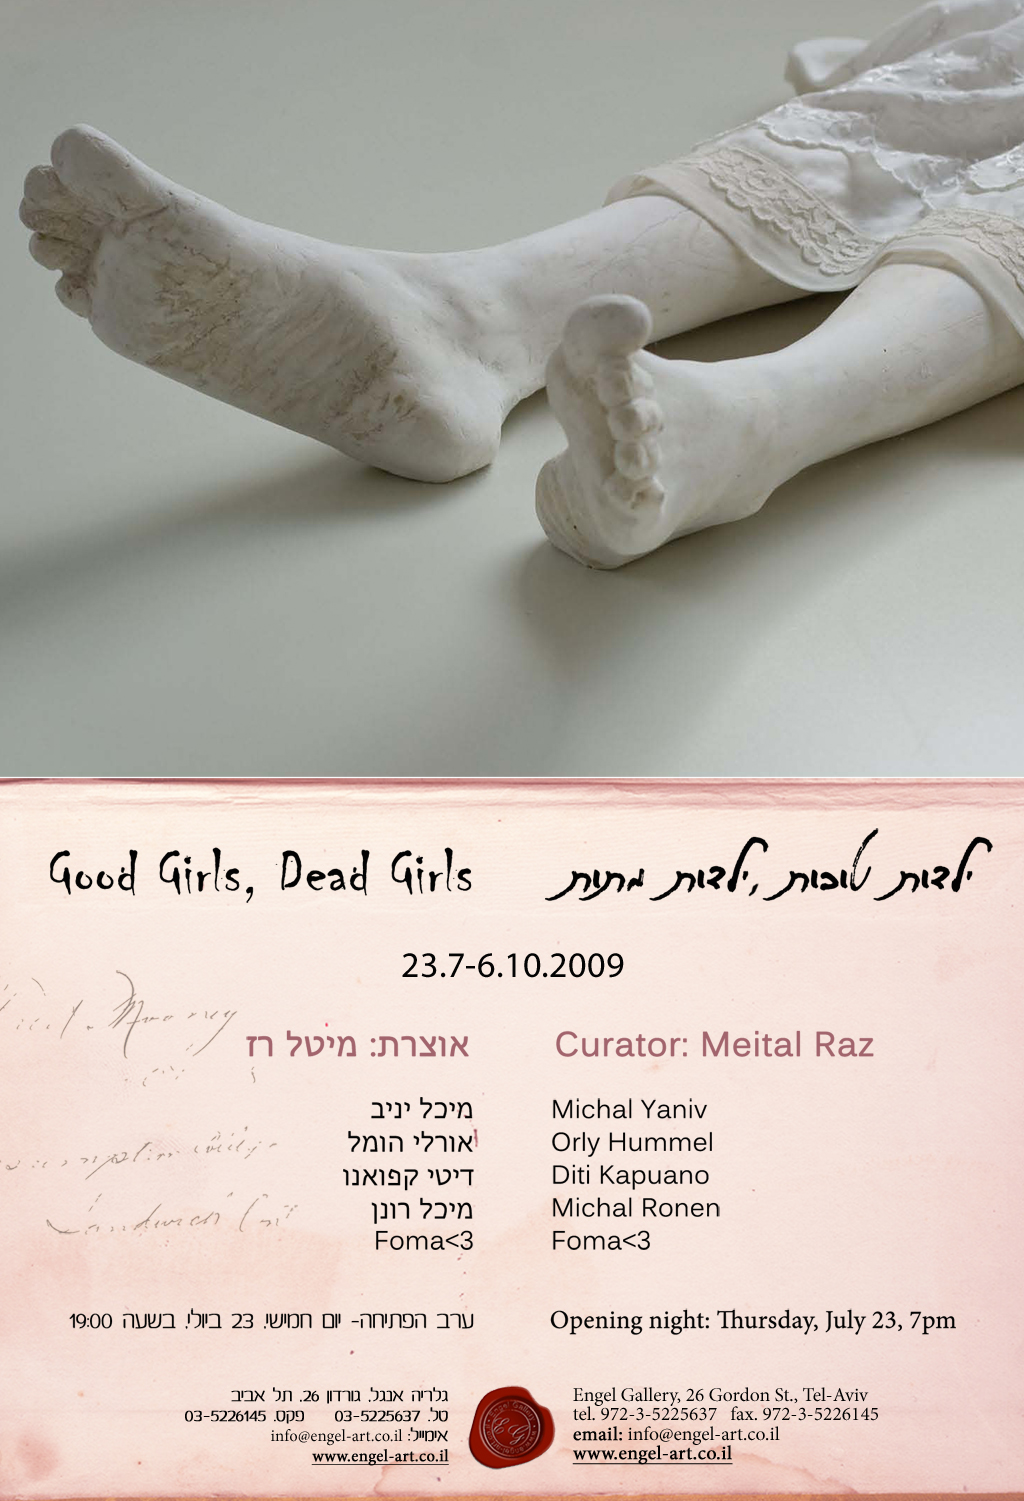 Good Girls, Dead Girls Invitation